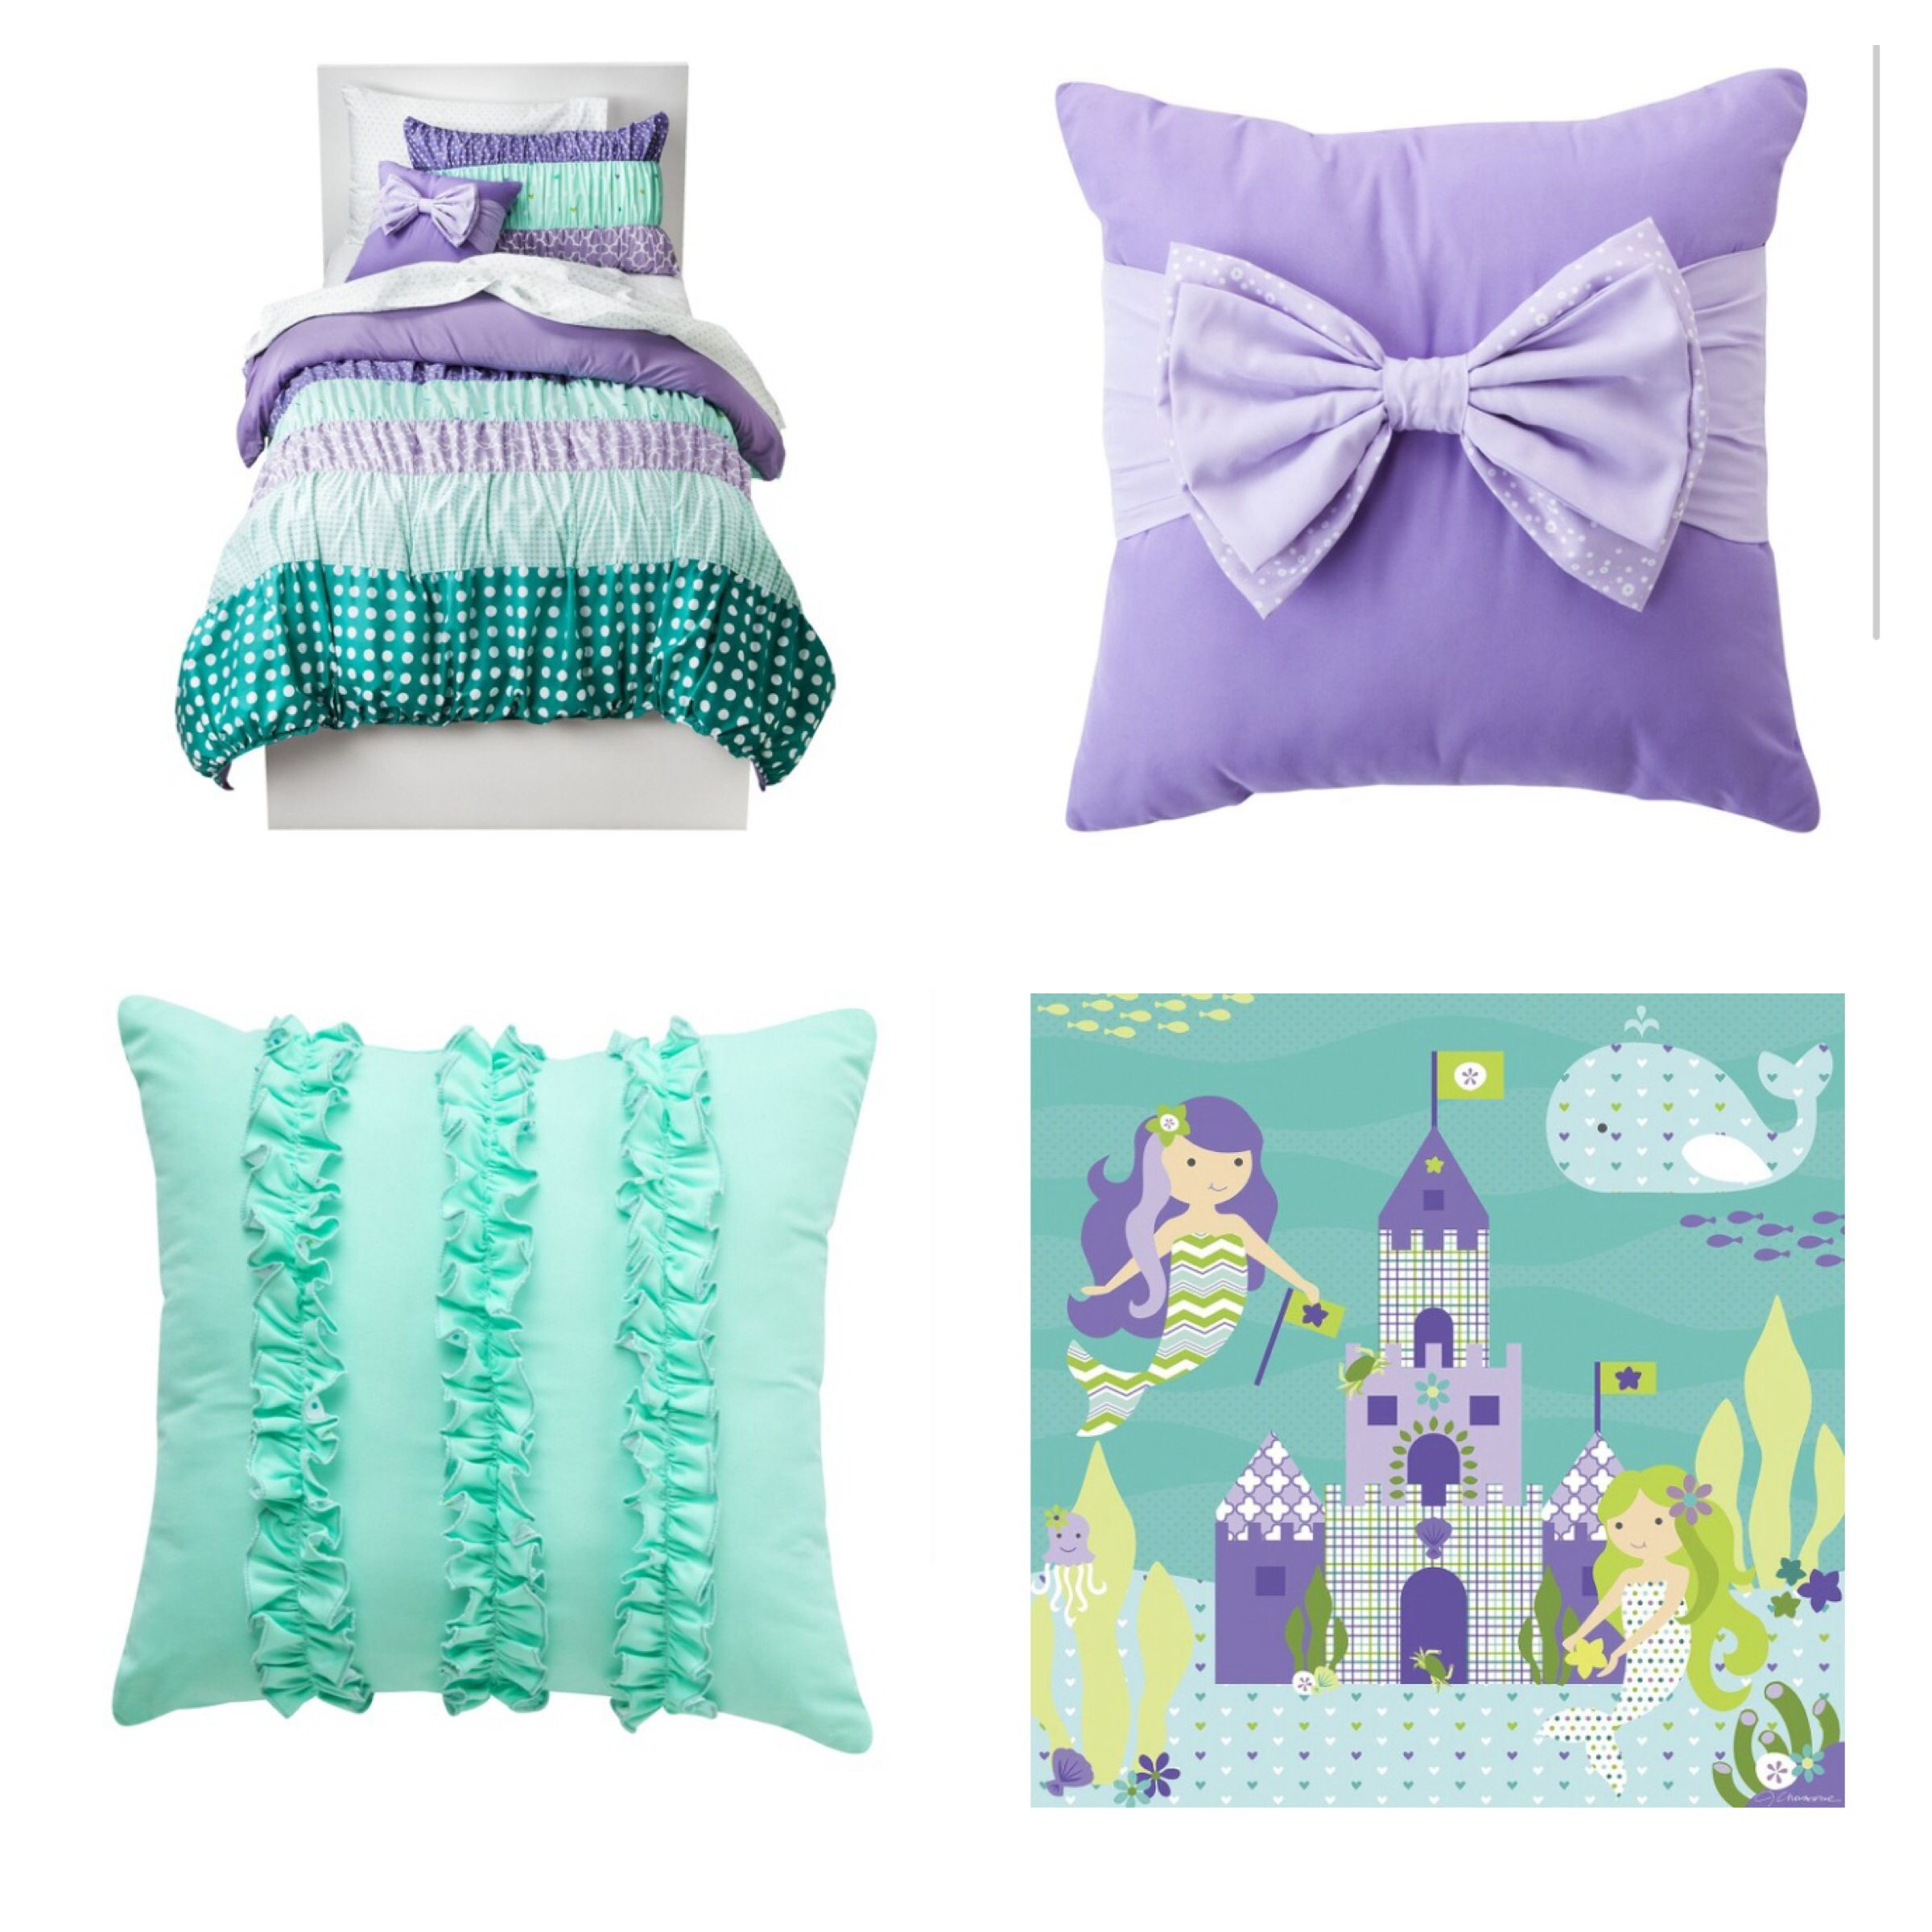 Bedroom Athletics Katy Bedroom Paint Ideas With White Furniture Bedroom Apartment Decorating Ideas Bedroom Ideas Quotes: Little Mermaid Girl's Room. Love The Teal And Purple Combo